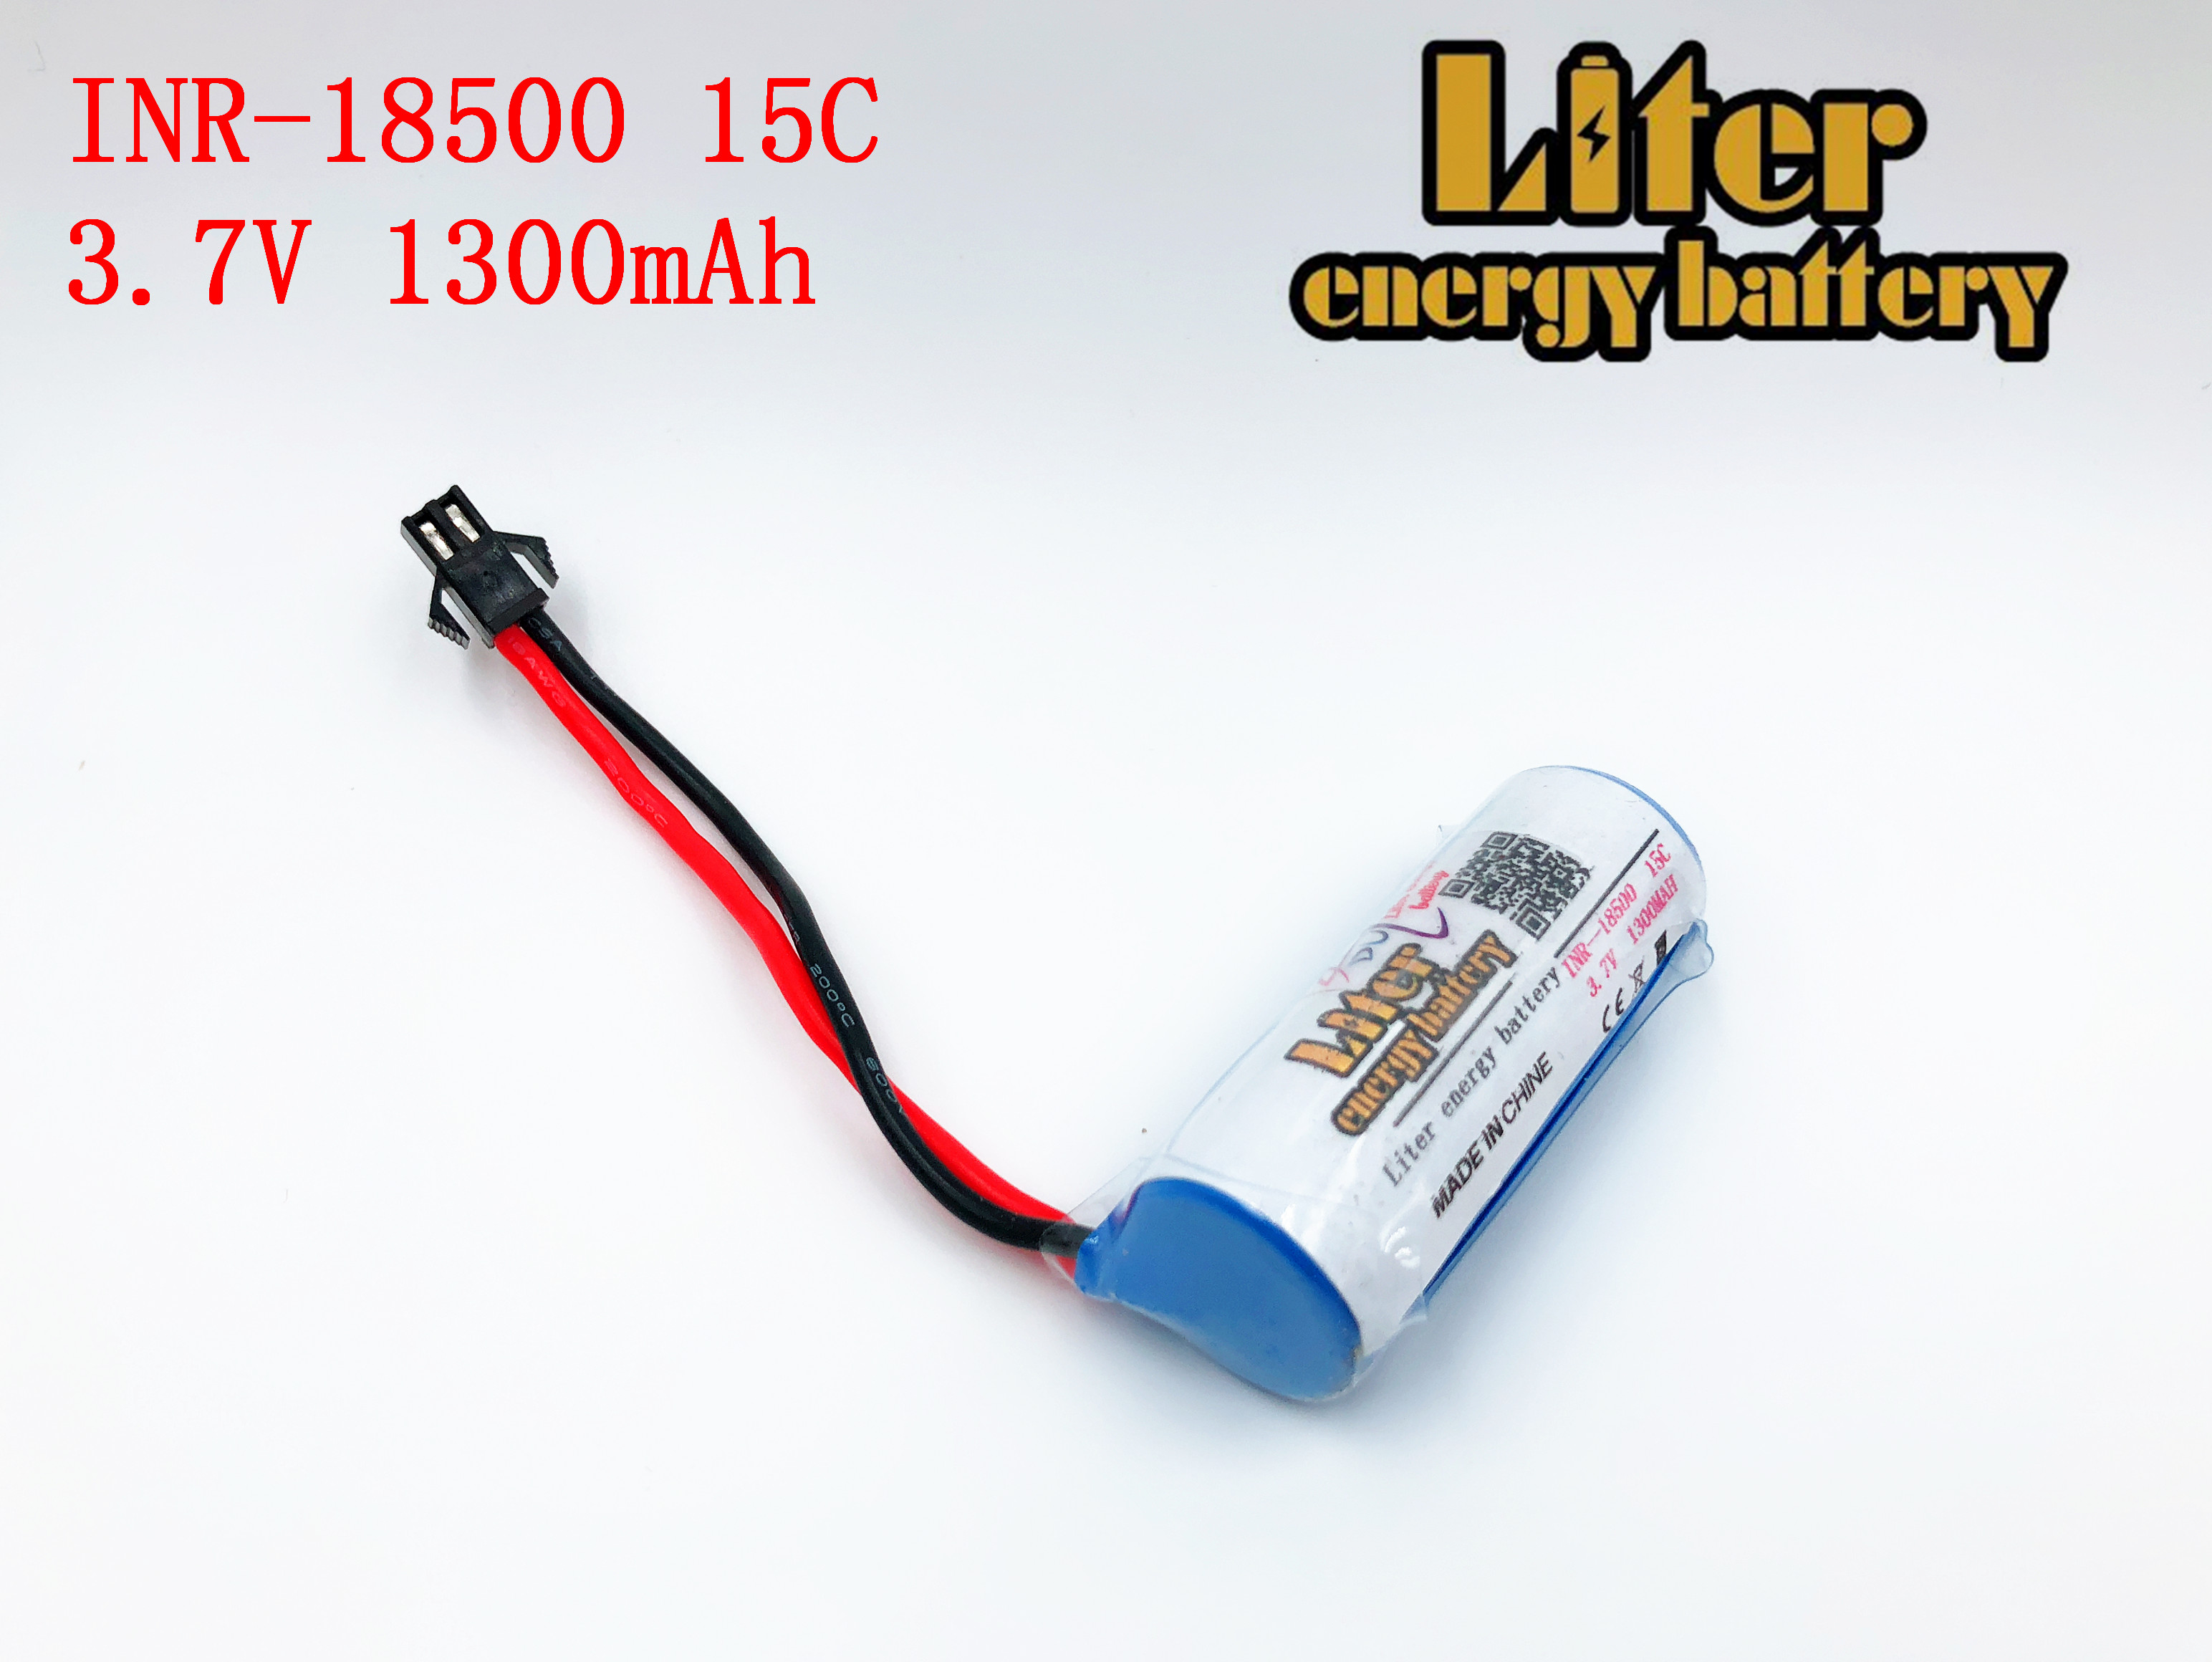 <font><b>3.7V</b></font> 1300mAh 15c Lipo <font><b>Battery</b></font> For S900 FT008 Remote control helicopter/Boat 3.7 v <font><b>18500</b></font> <font><b>Li</b></font>-po <font><b>batteries</b></font> for Toy <font><b>Battery</b></font> SM Plug image